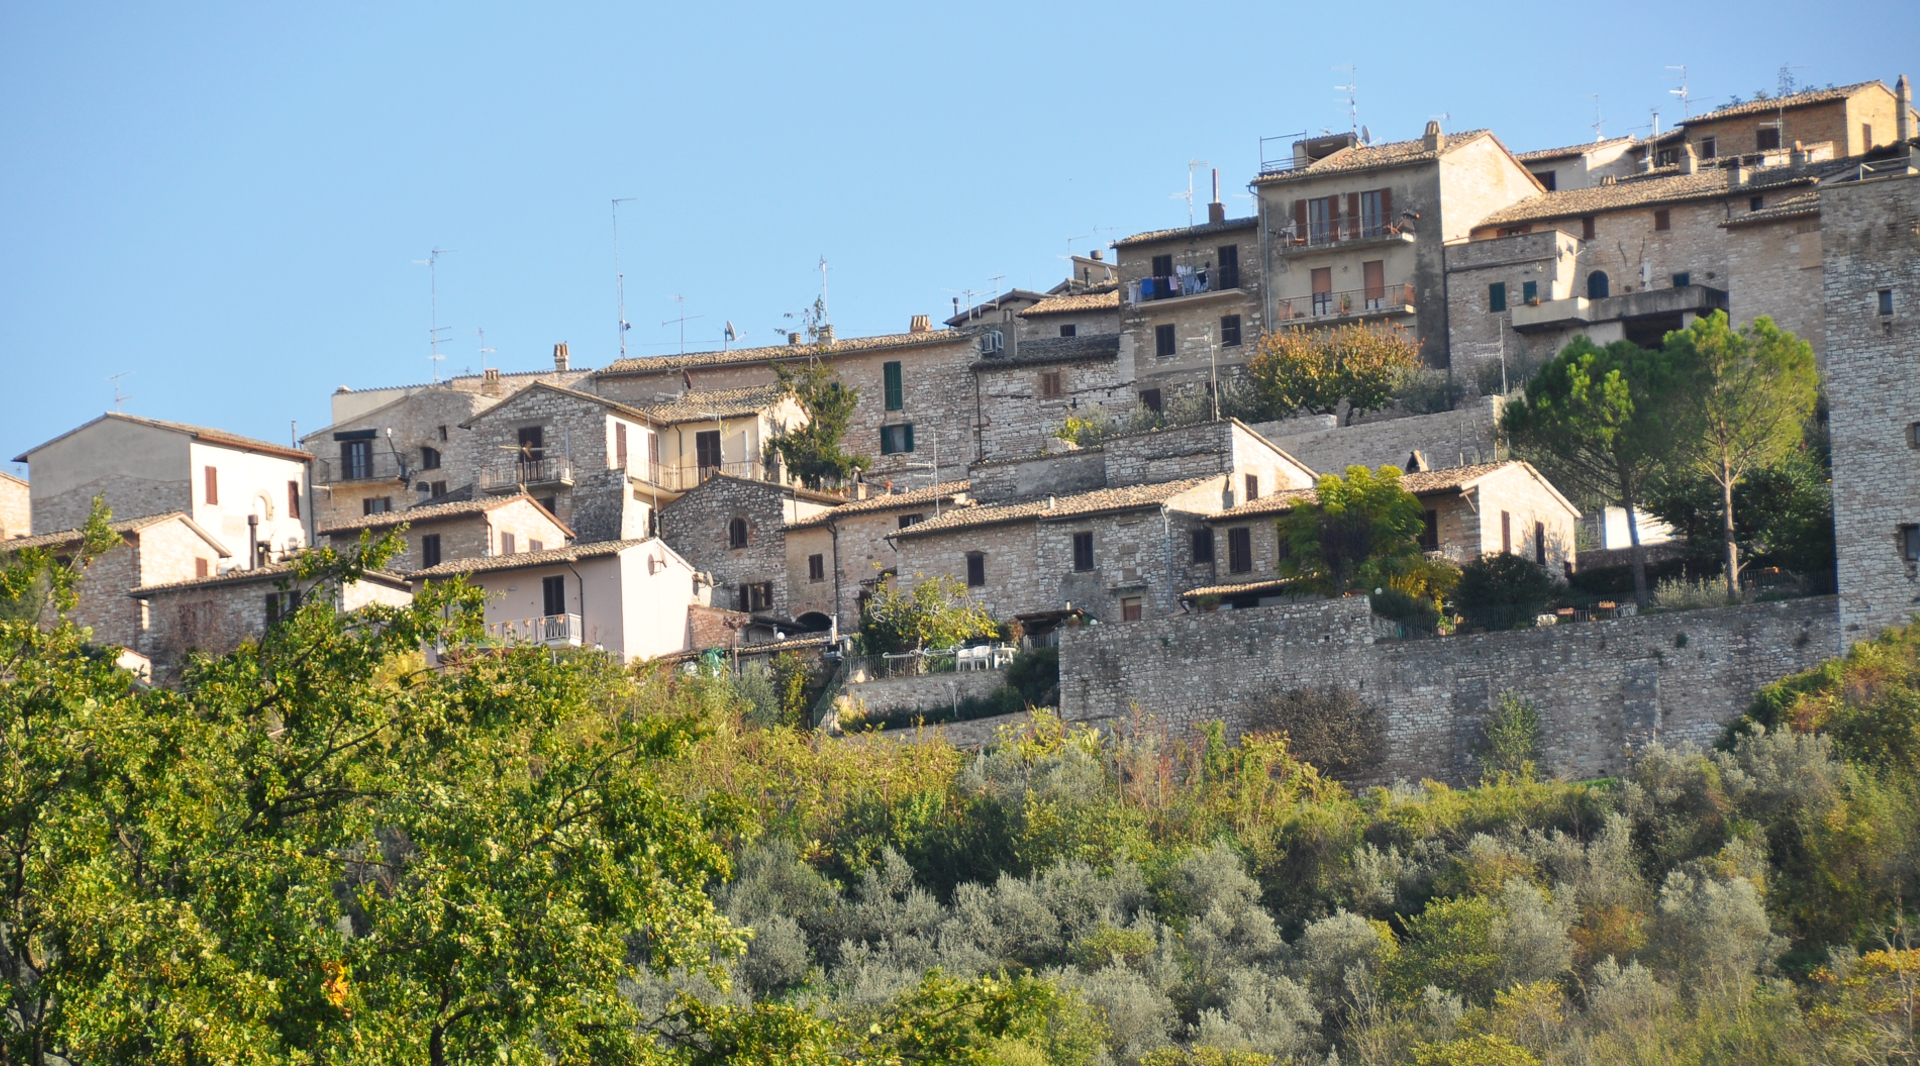 Landscape of olive groves on the hills of Spoleto and Assisi